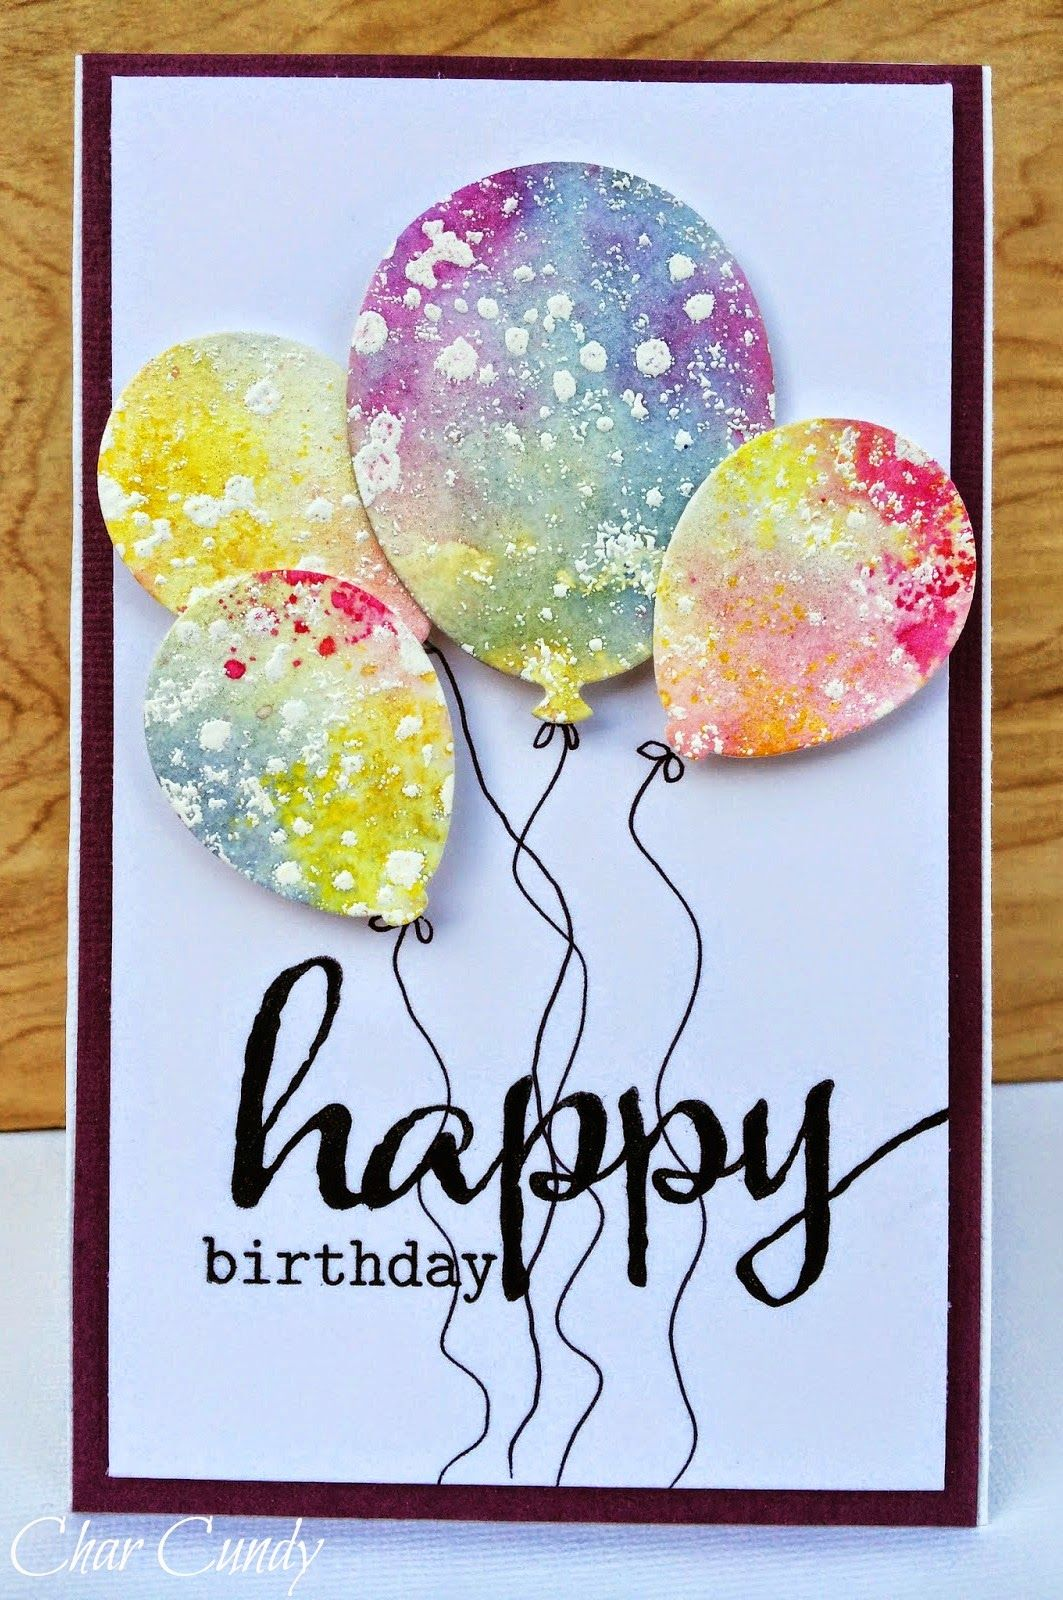 Balloons Image Creative Birthday Cards To Make Card Ideas Happy